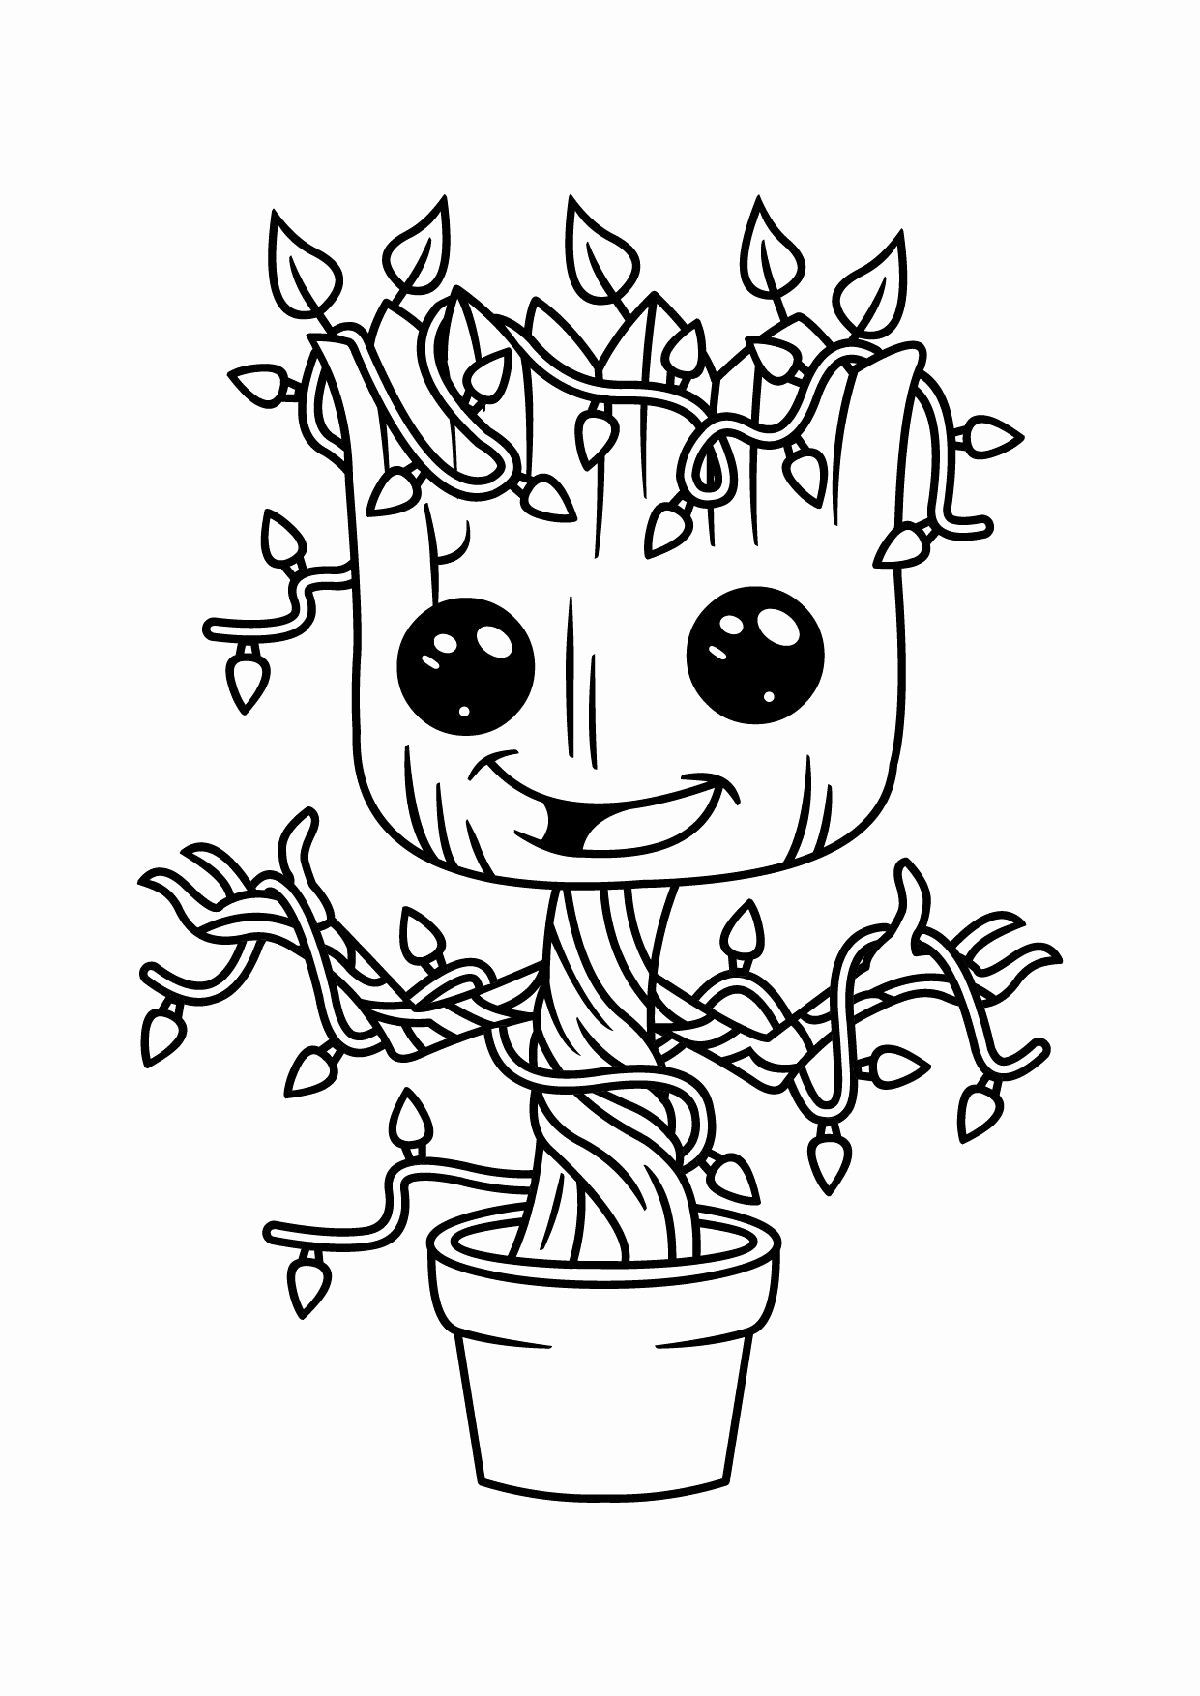 Baby Groot Coloring Page Lovely Cute Baby Groot Coloring Pages From Guardians Of The In 2020 Marvel Coloring Disney Coloring Sheets Dog Coloring Page